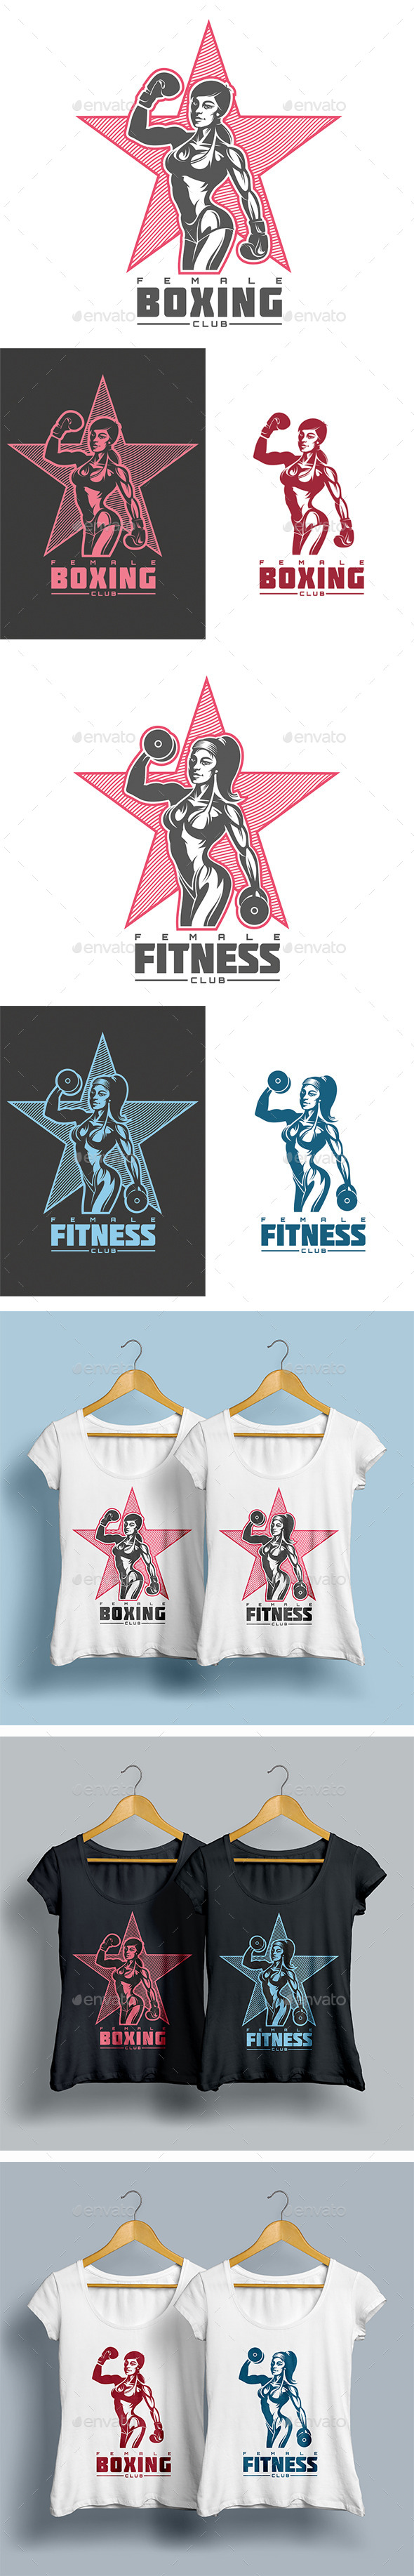 Female Boxing and Fitness T-shirts Templates